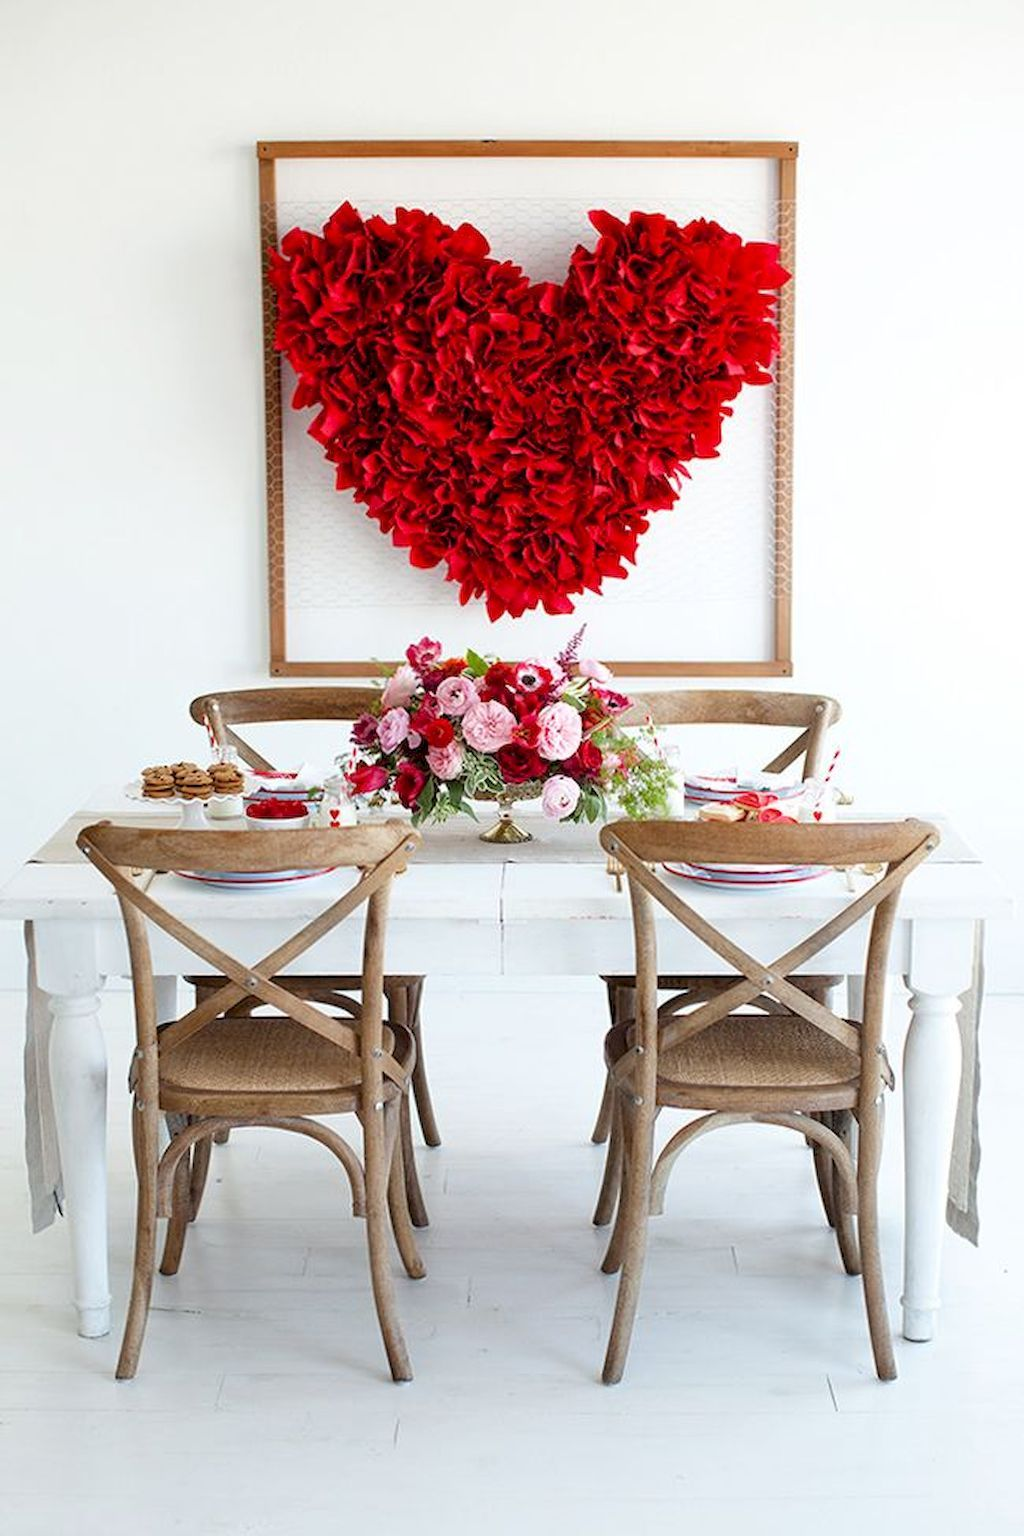 decor valentiness day ideas - HD 1024×1536